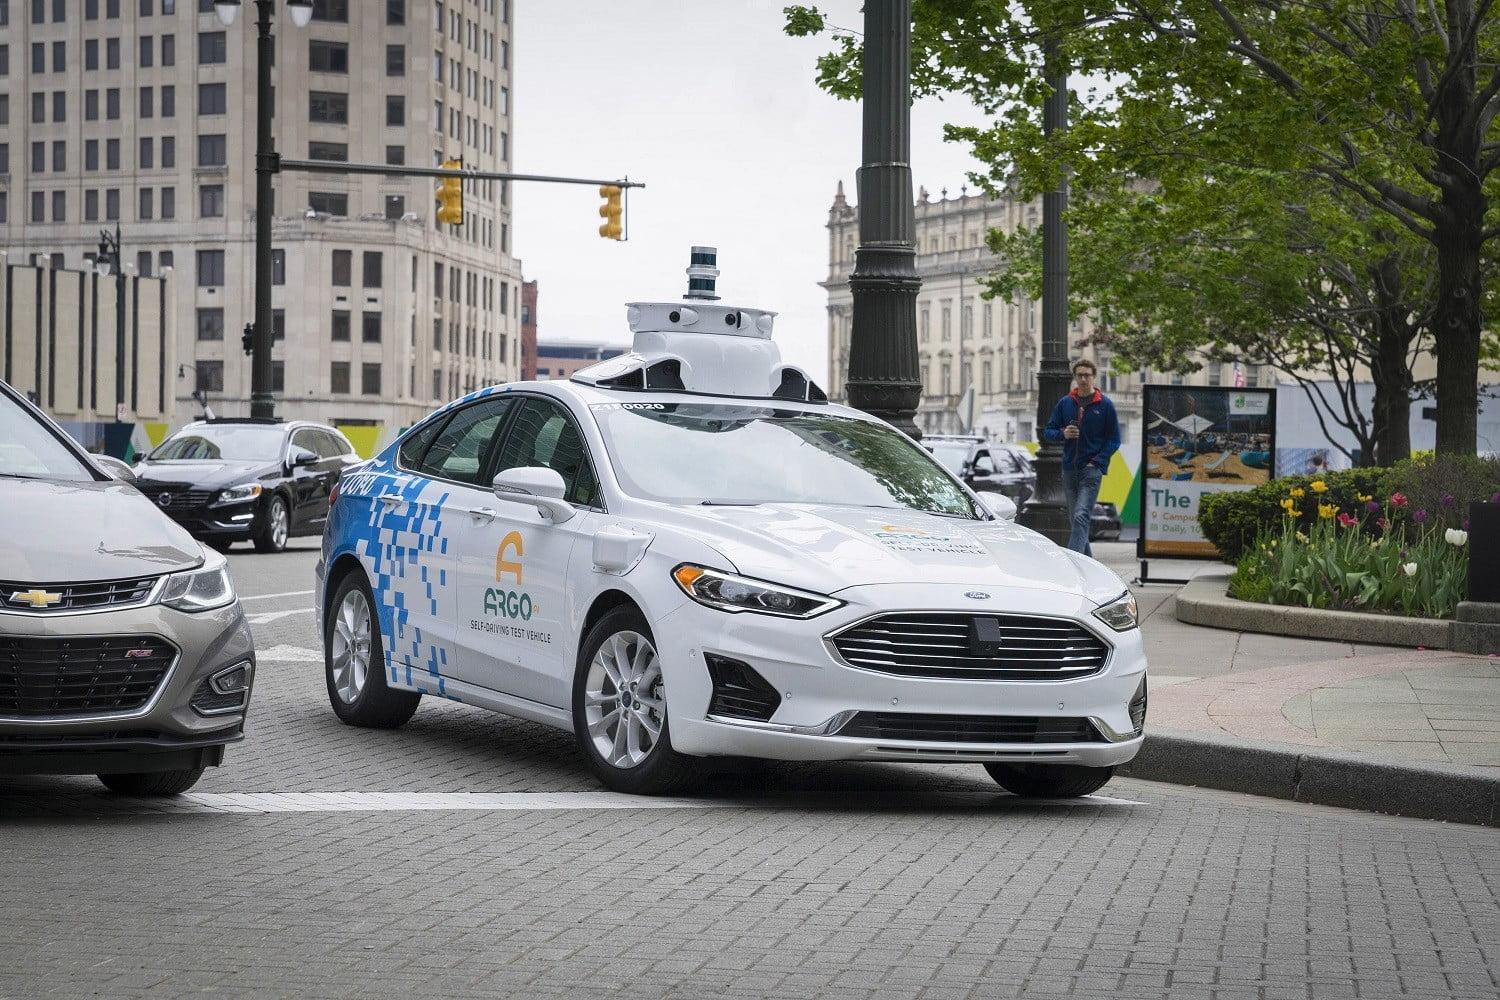 Ford Electric Car >> Volkswagen And Ford Partner On Electric Cars Autonomous